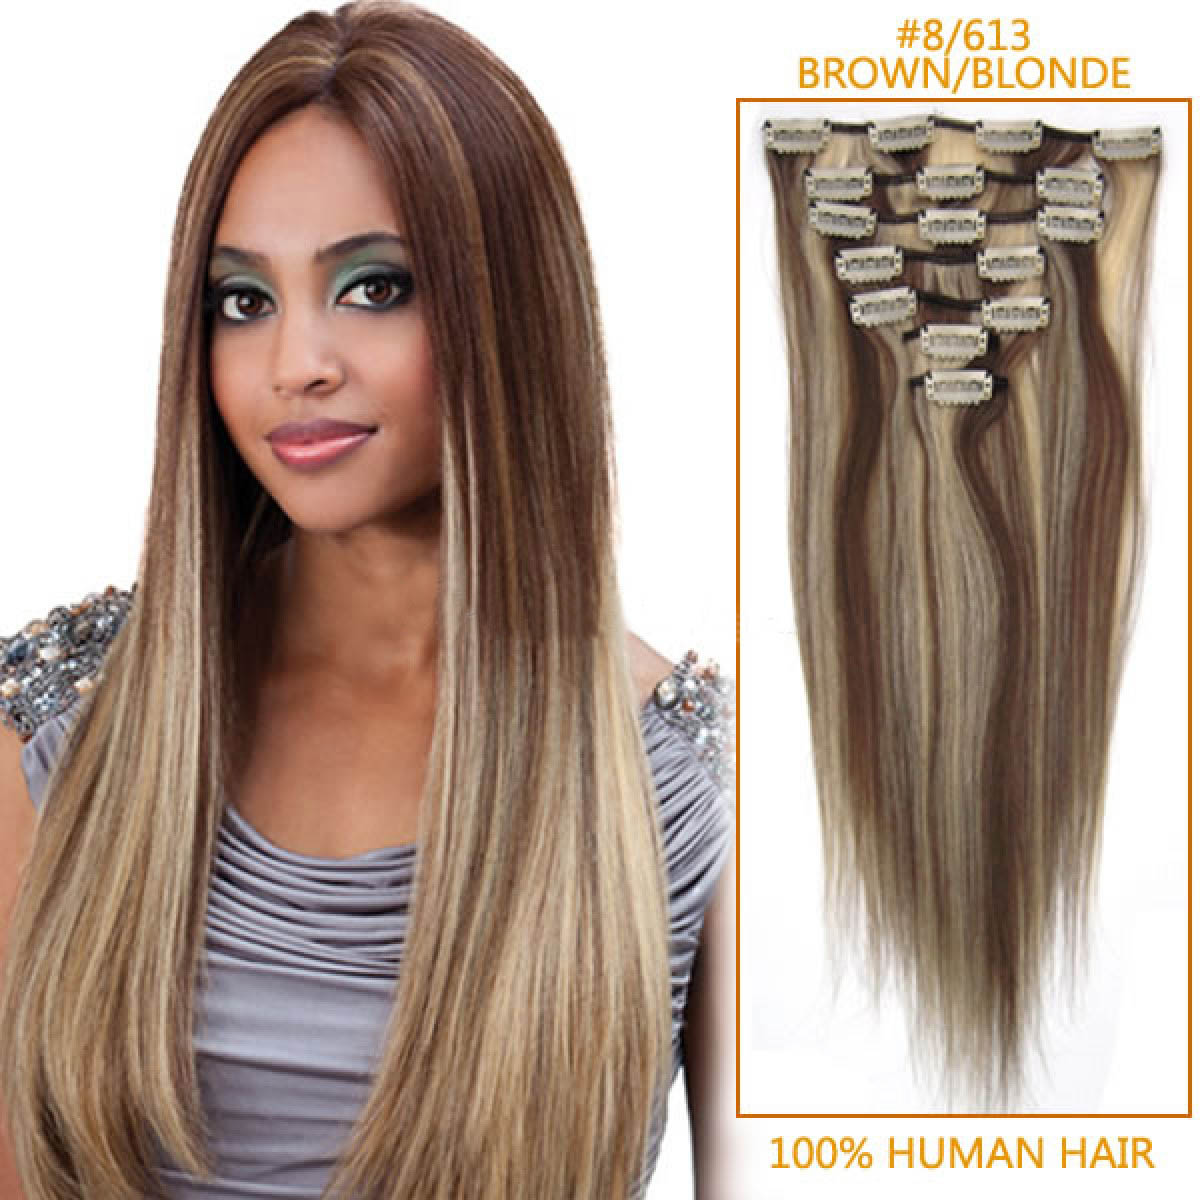 Light Brown And Blonde Hair Extensions 8